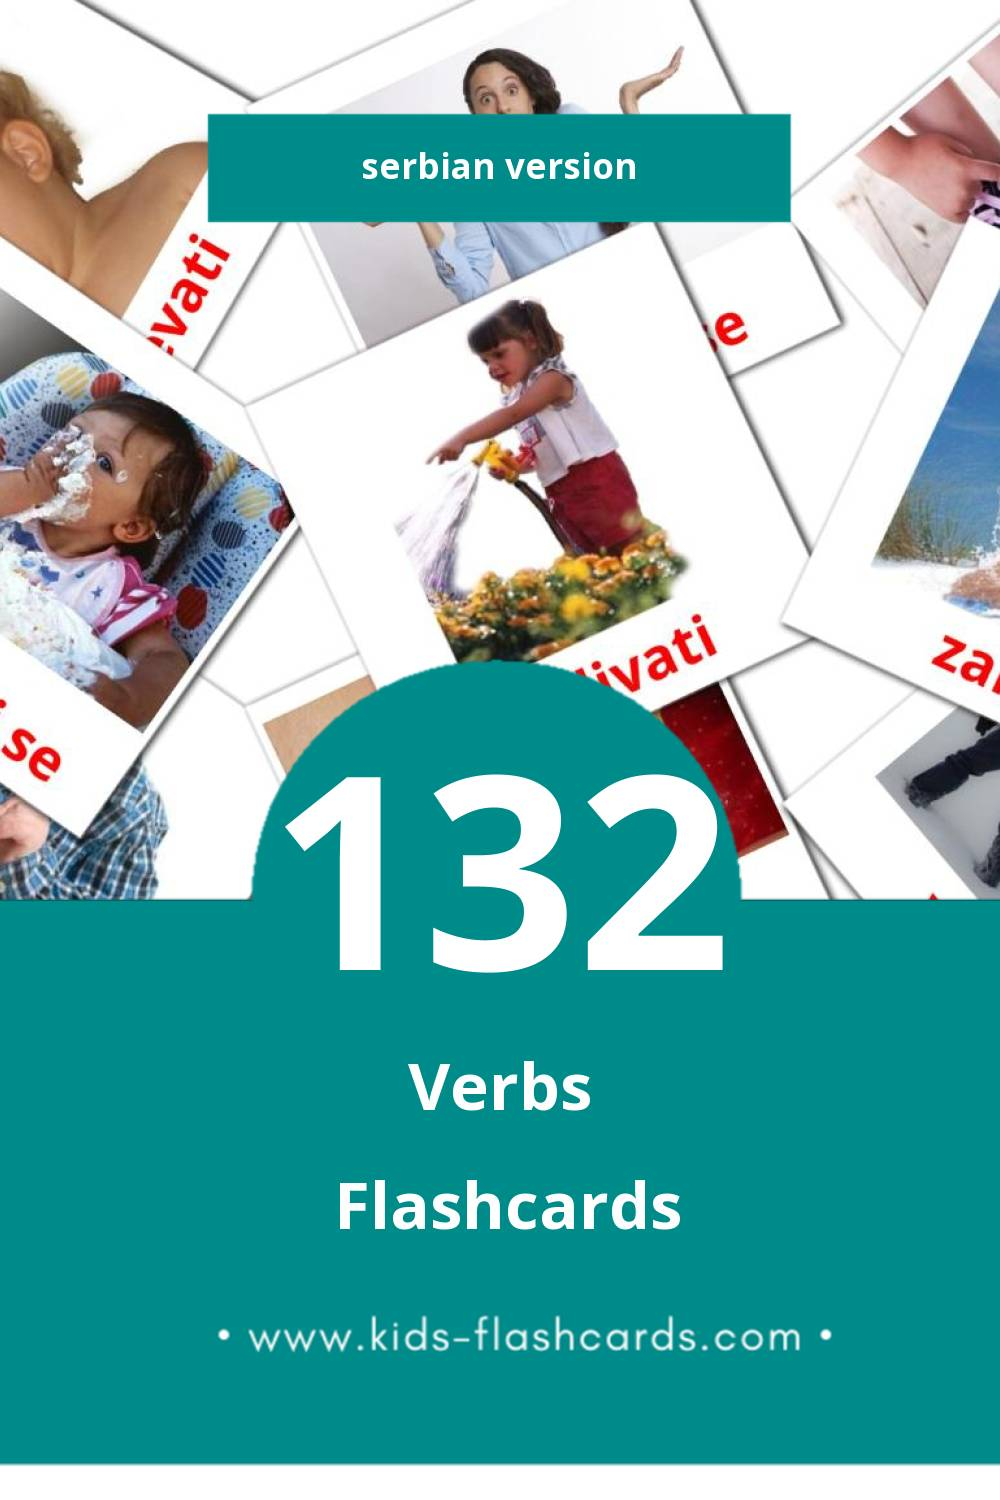 Visual Glagoli Flashcards for Toddlers (133 cards in Serbian)